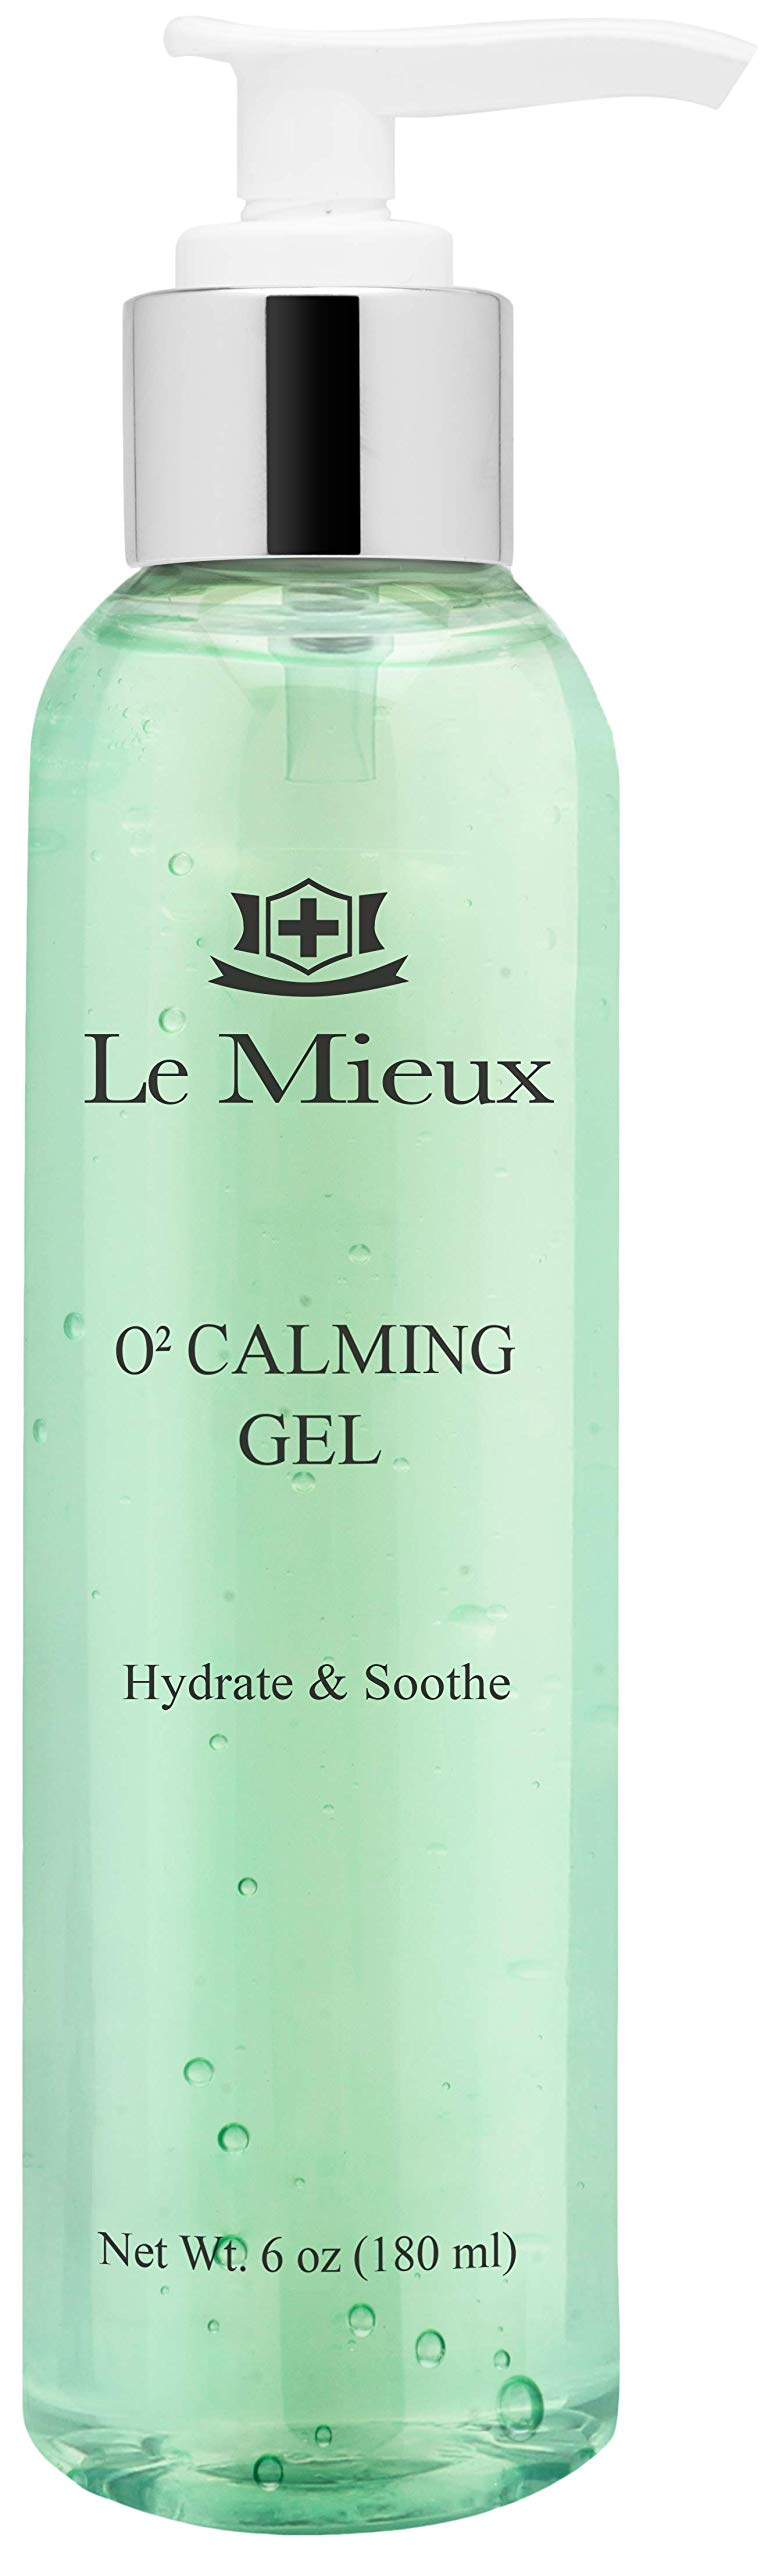 Le Mieux O2 Calming Gel - Conductive Facial Gel with Aloe - Soothe Mild Visible Irritation & Redness - Hydrating Hyaluronic Acid Gel for Microcurrent Devices - No Parabens or Sulfates (6 oz / 180 ml)